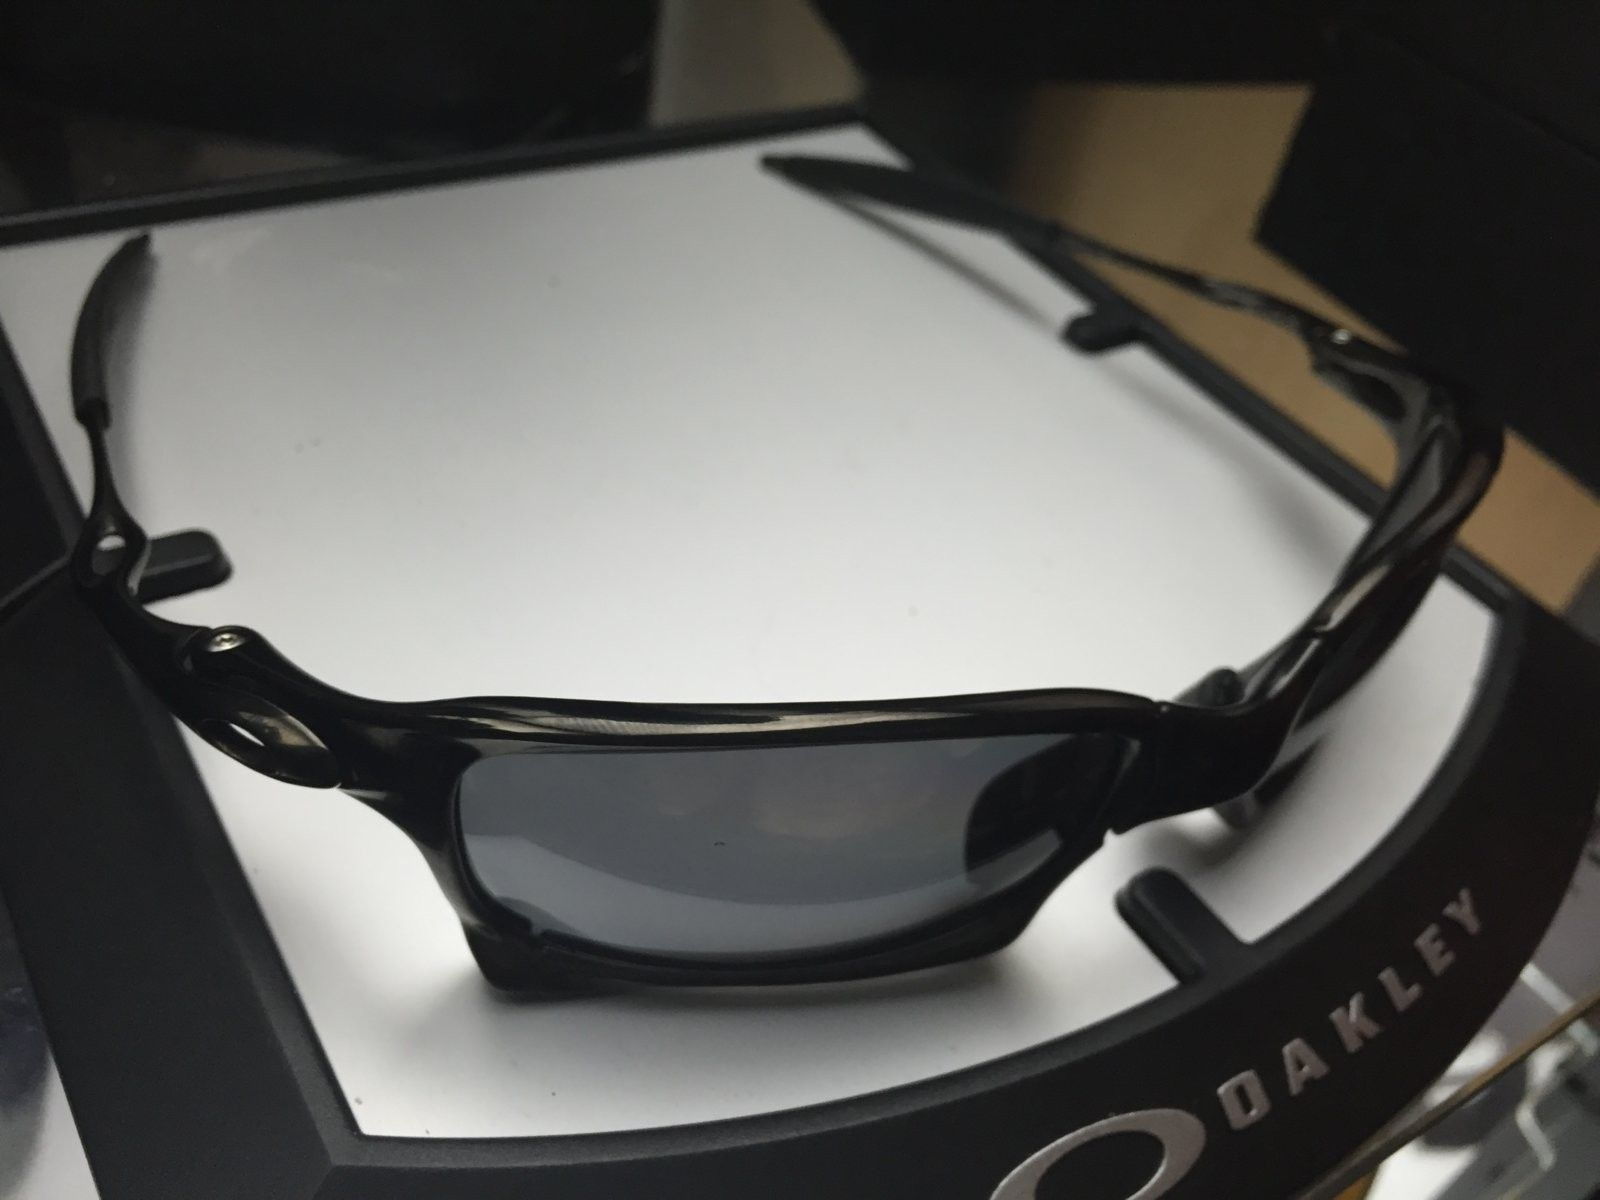 Xsquared carbon polished w/ black iridium Polarized SKU: 006011-06 - $380 - image.jpeg